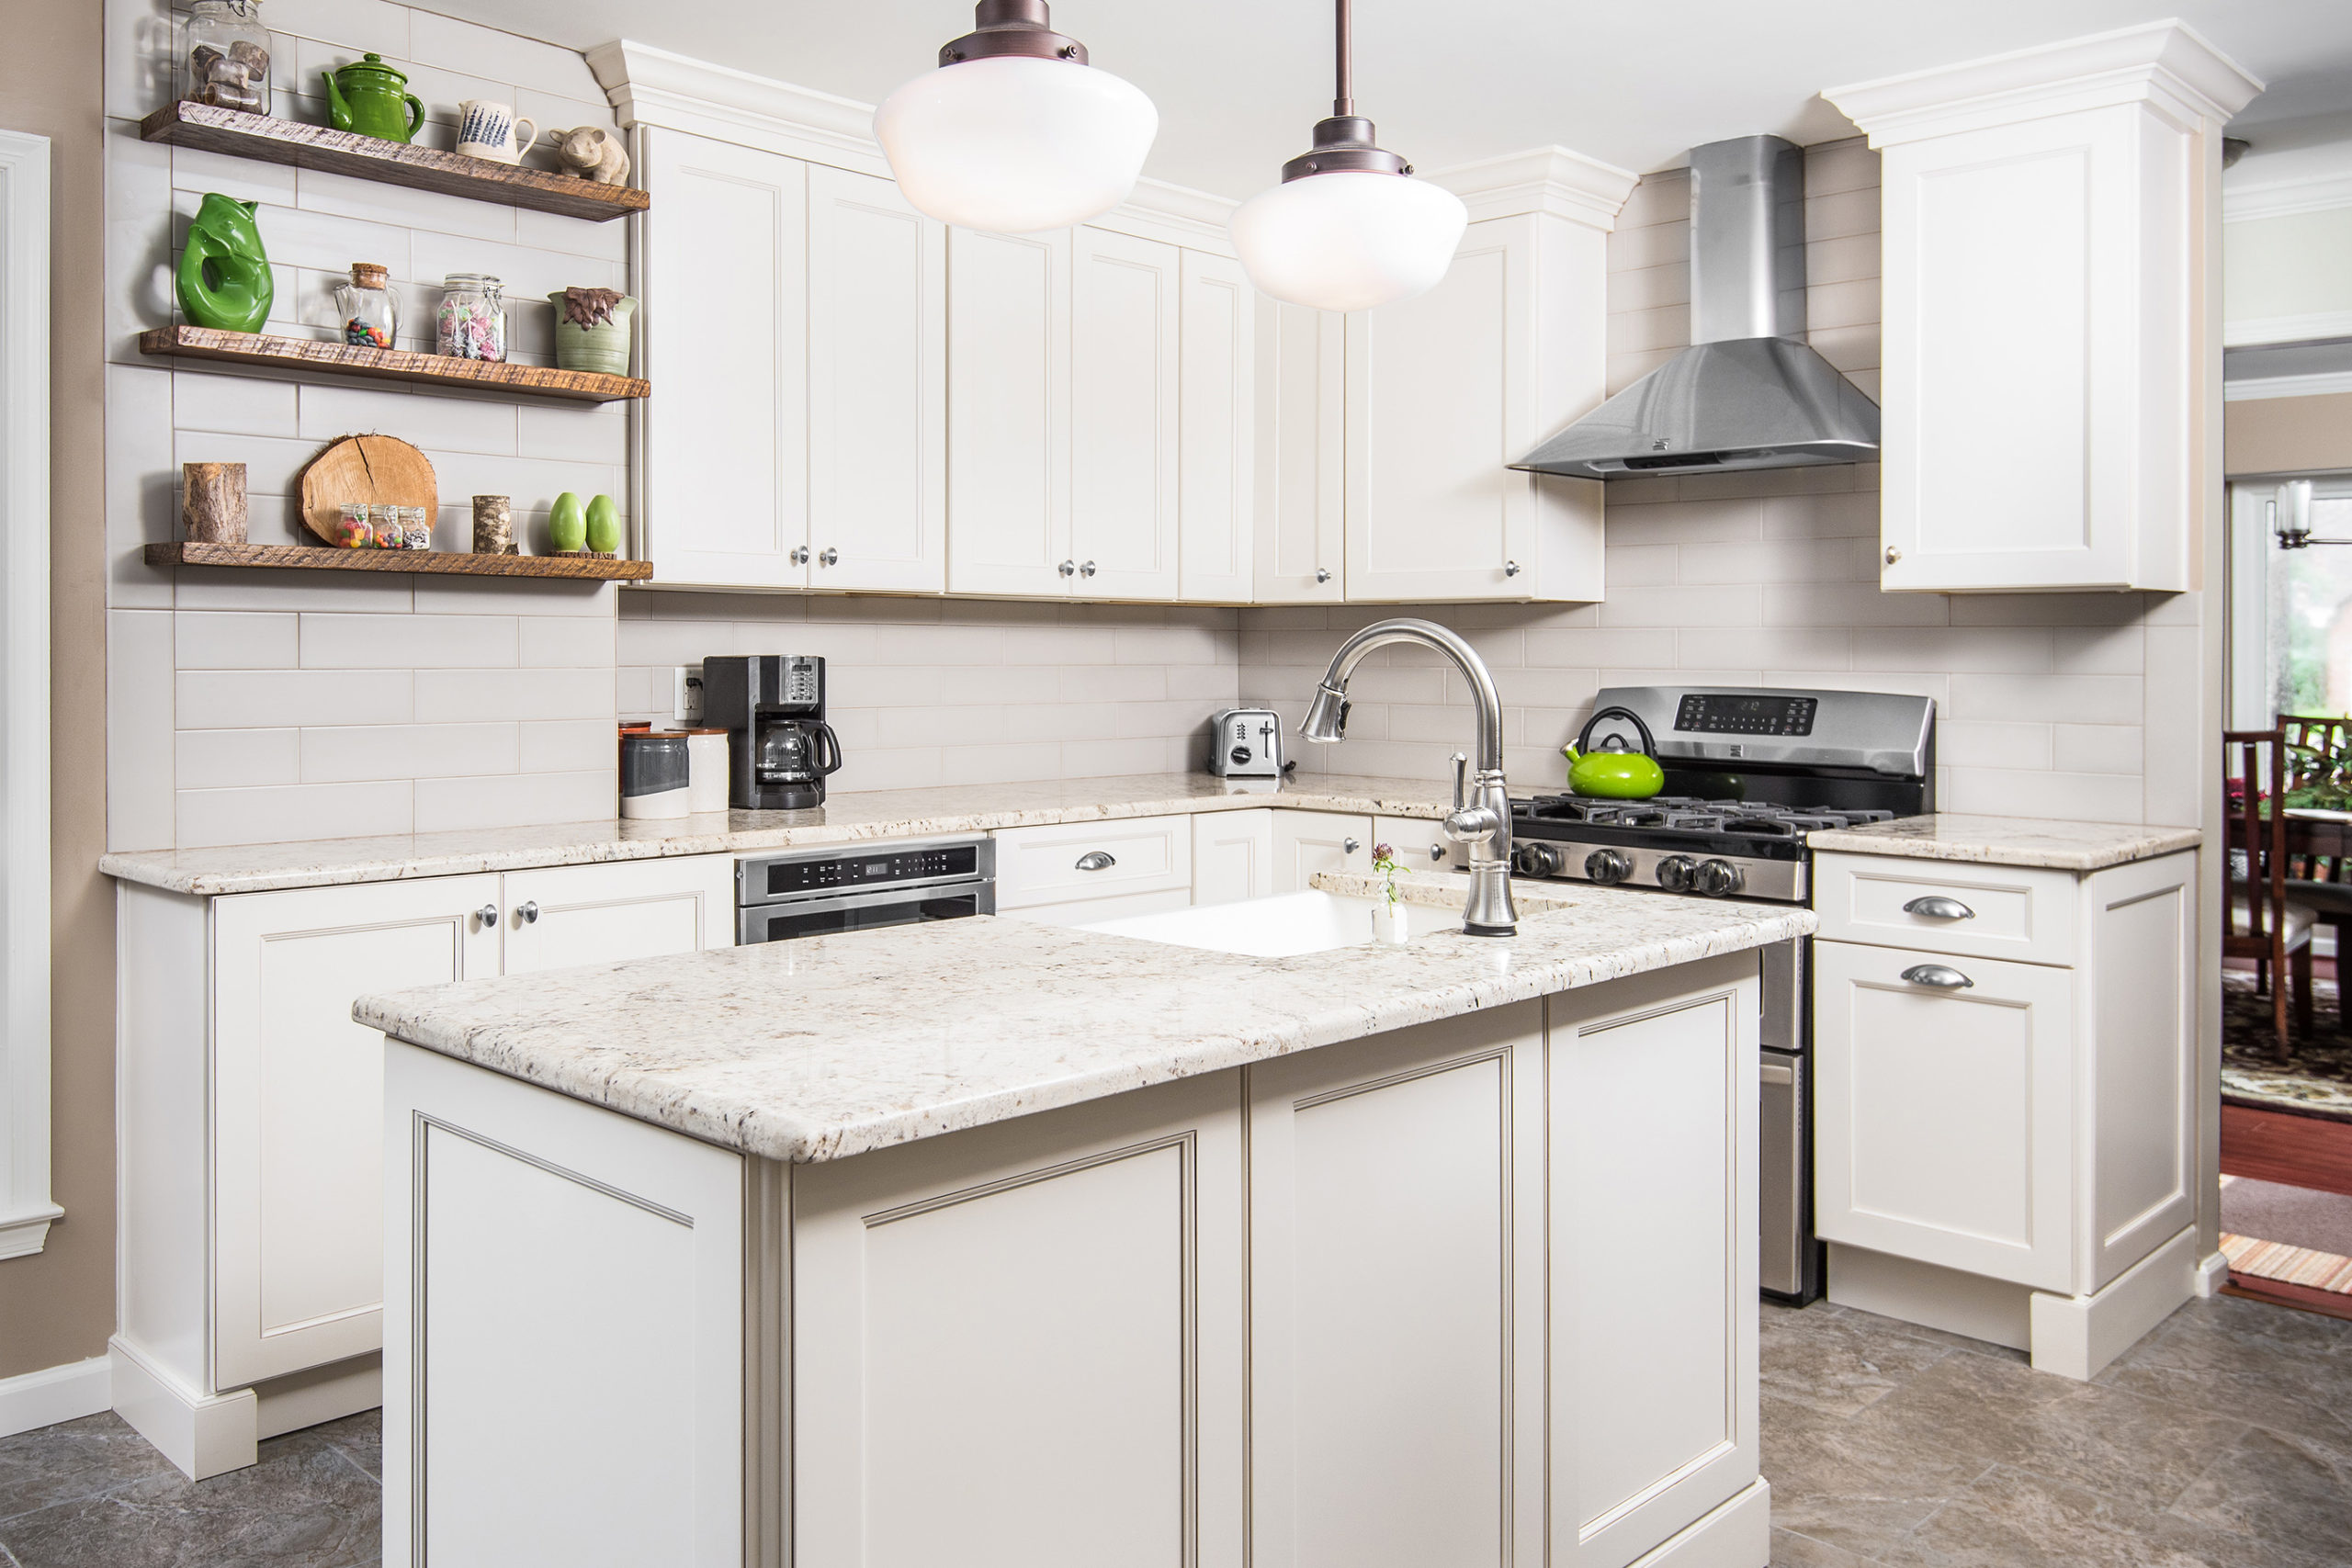 BlueStar Home Warehouse - Discount Kitchen Cabinets in ...